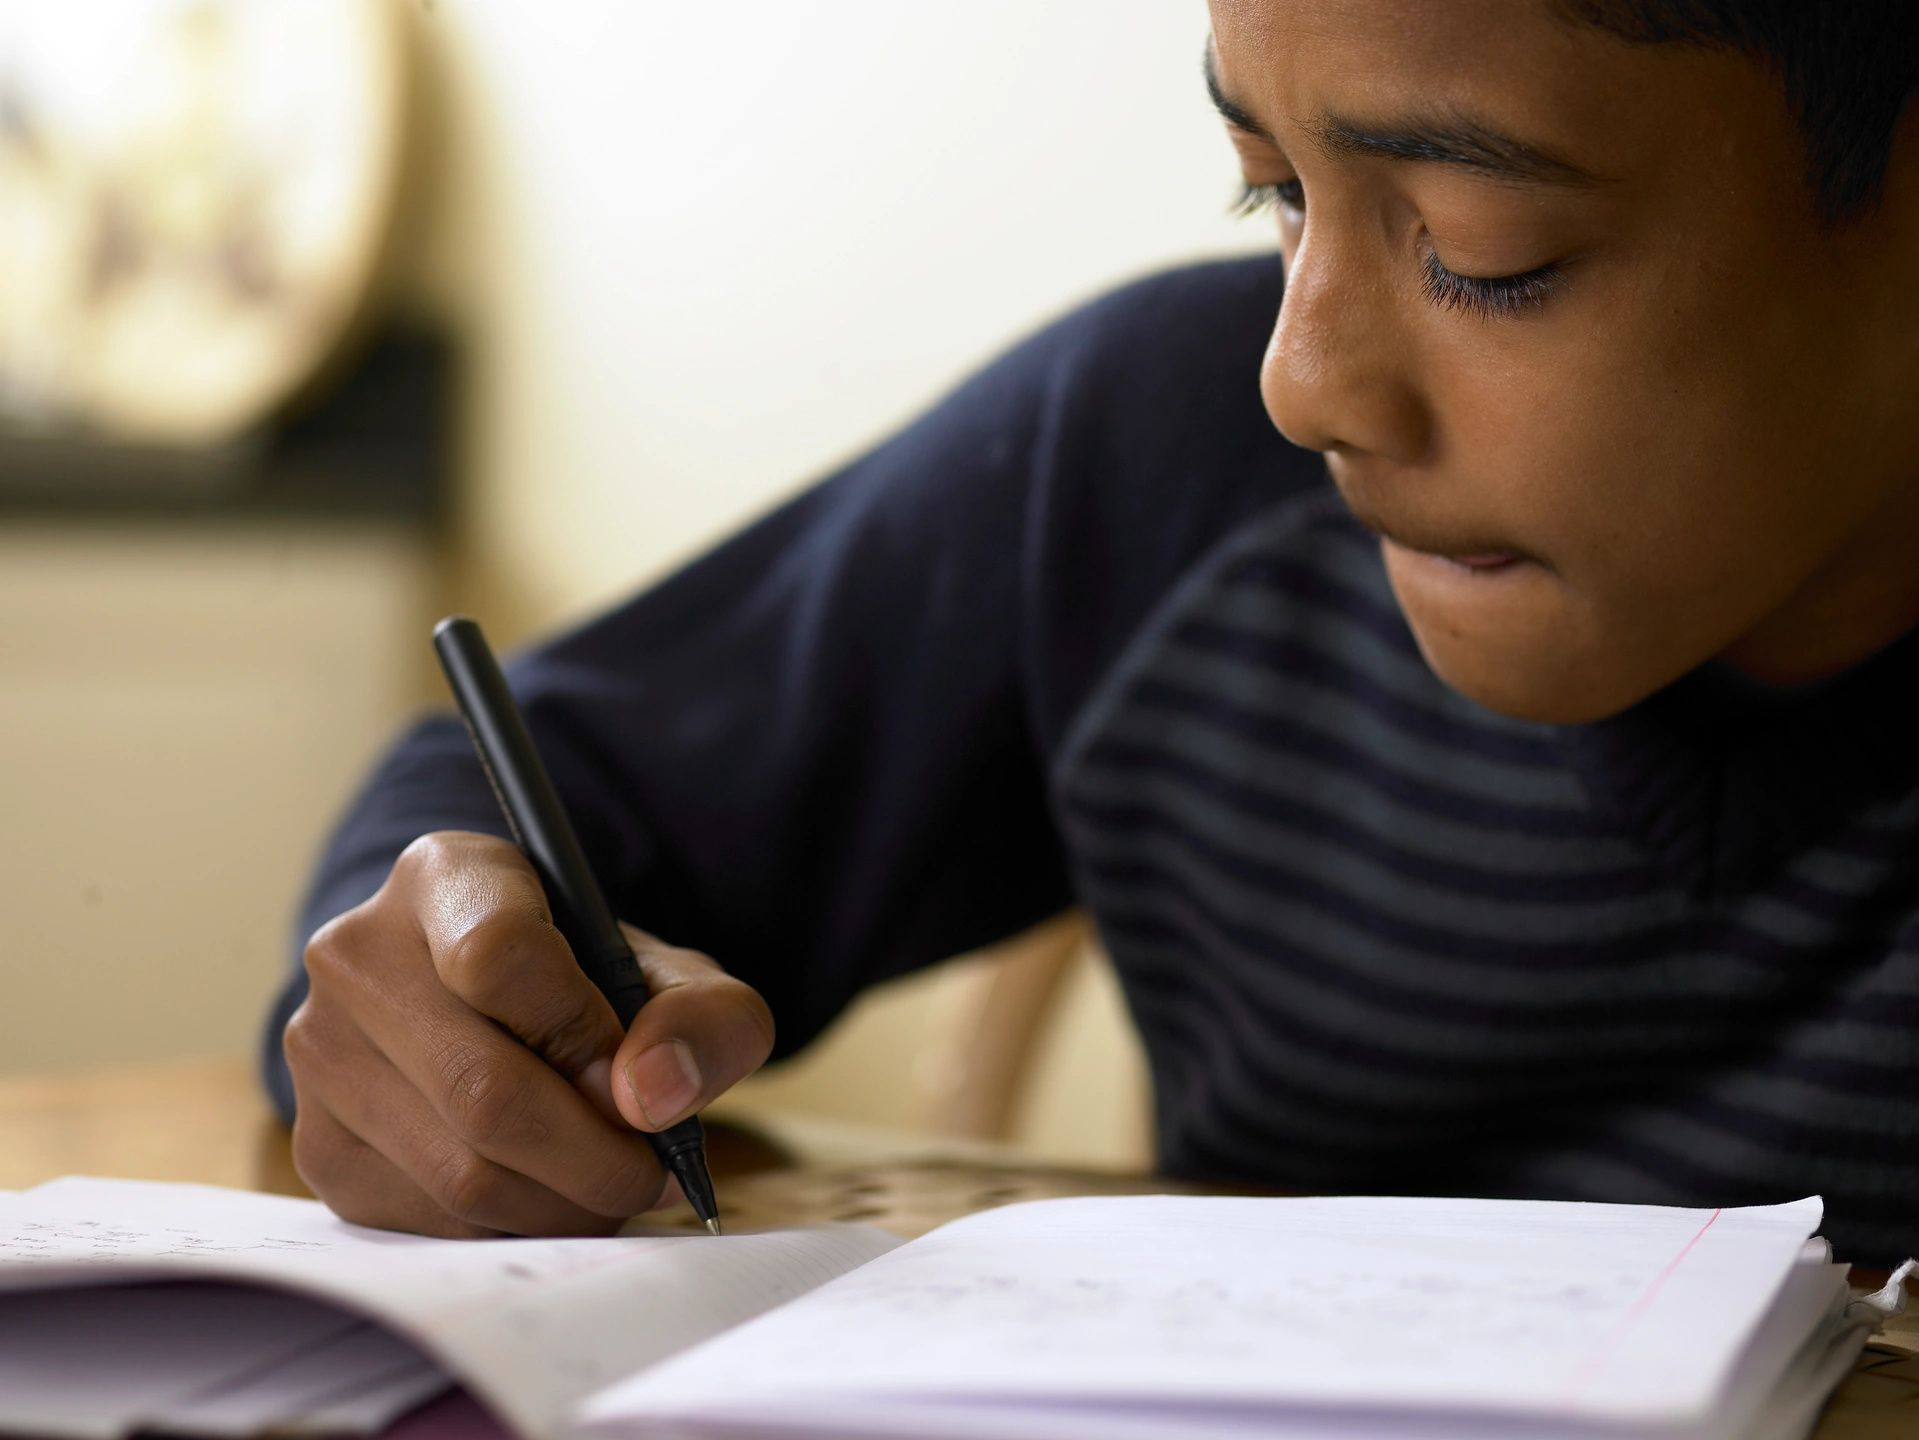 Boy studying with book and pen.